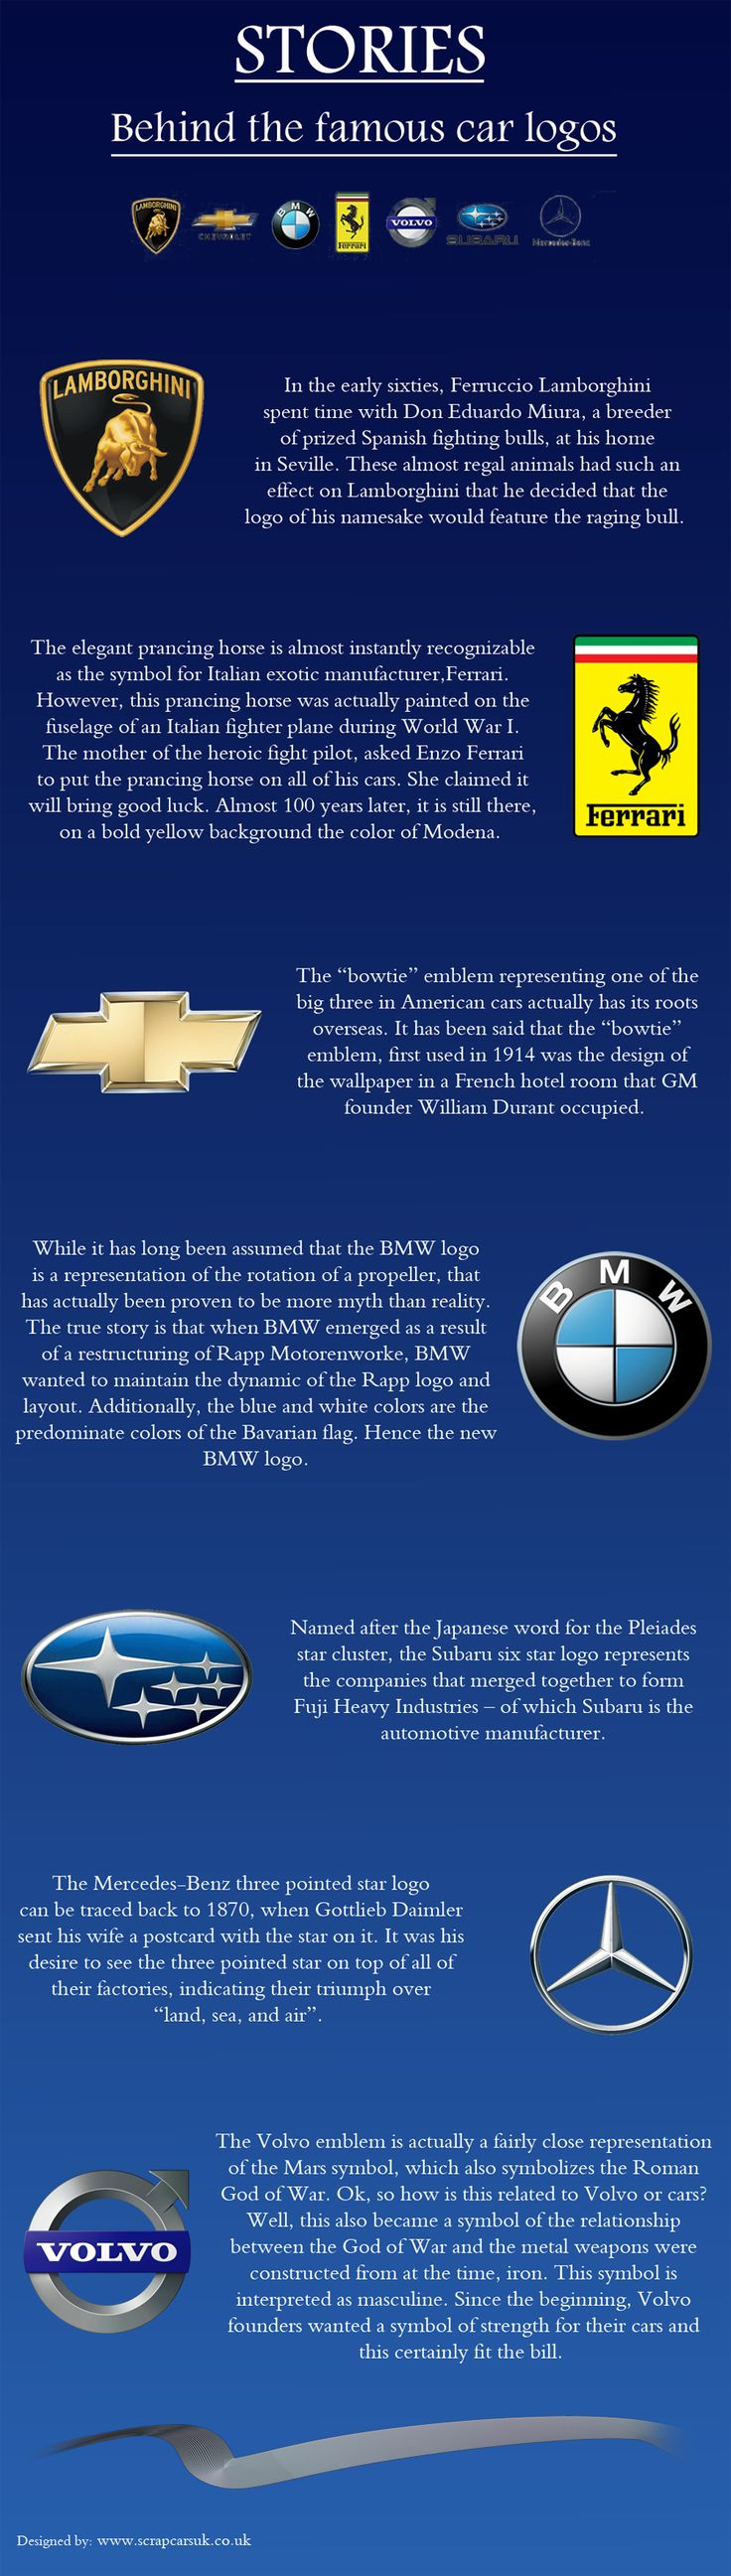 Historias detrás los logos de coches famosos #infografia #infographic #marketing